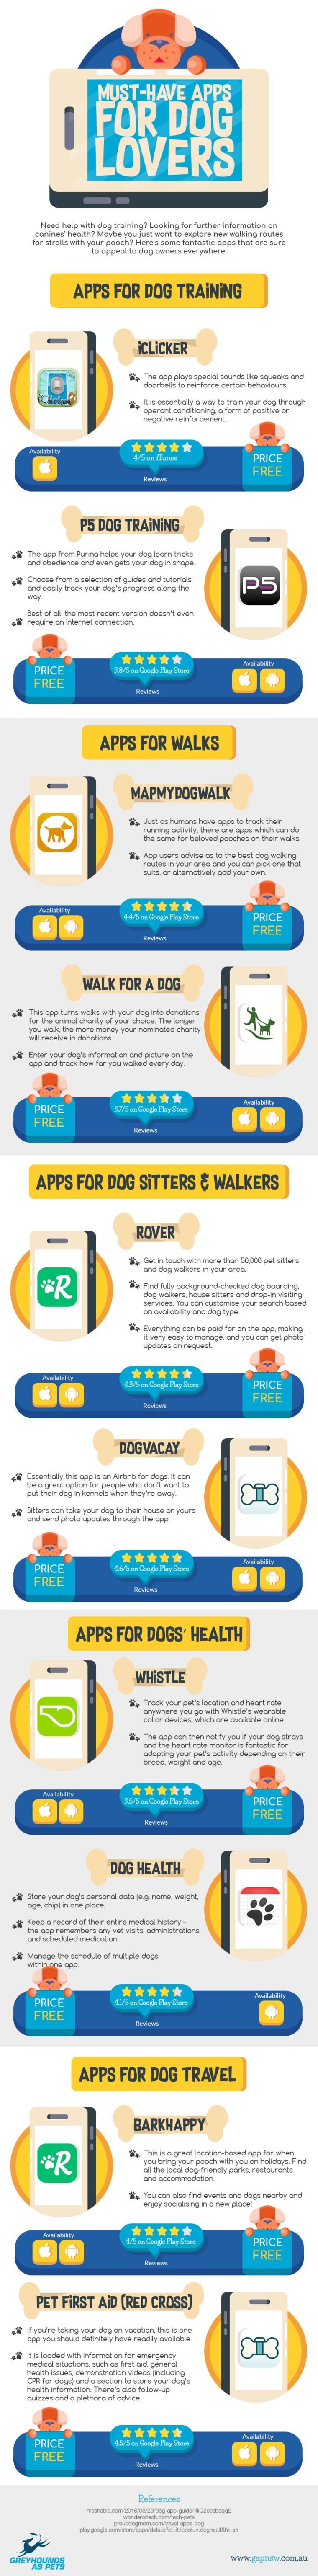 Must-Have Apps for Dog Lovers [Infographic] | ecogreenlove